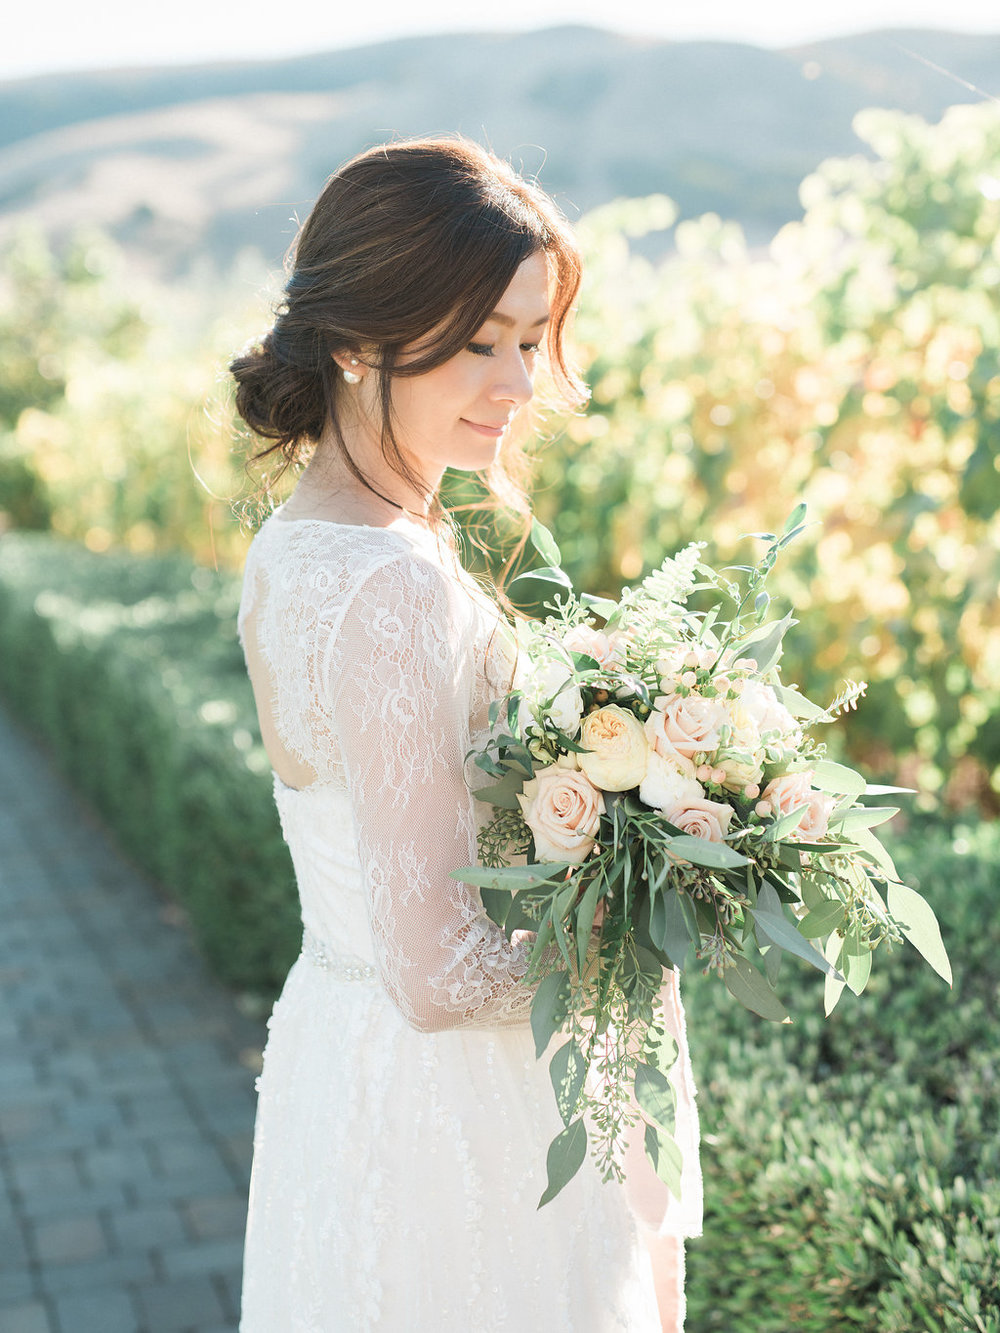 https://www.bhldn.com/shop-the-bride-wedding-dresses/forte-gown/productOptionIDS/fbcaeb8b-b90b-4e9a-9313-32da085940dd